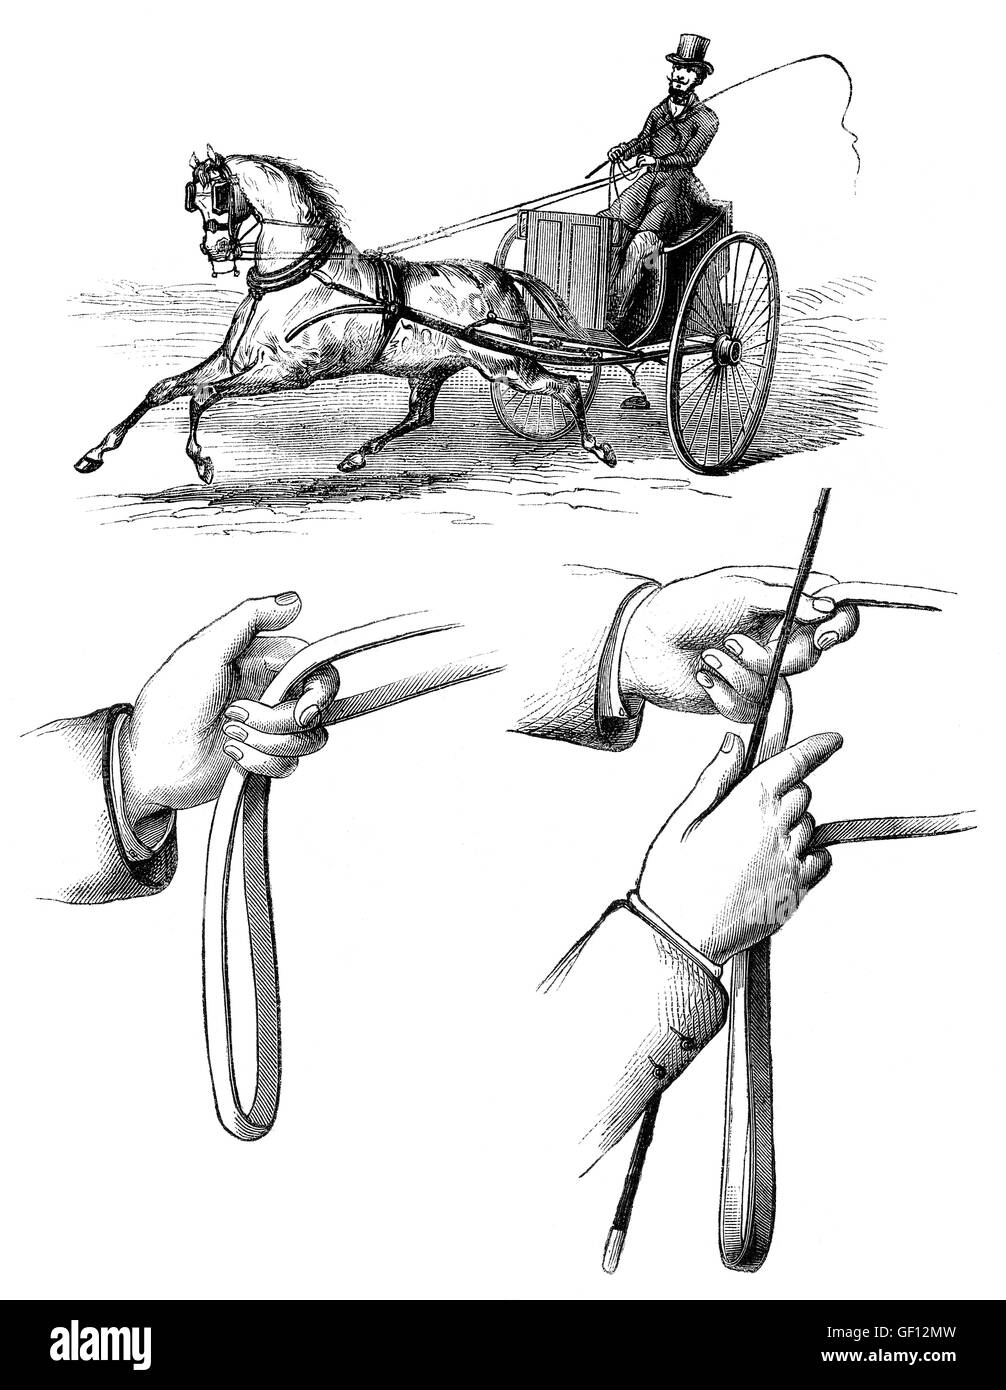 Methods of guiding horses by pulling on its reins, one horse driving - Stock Image